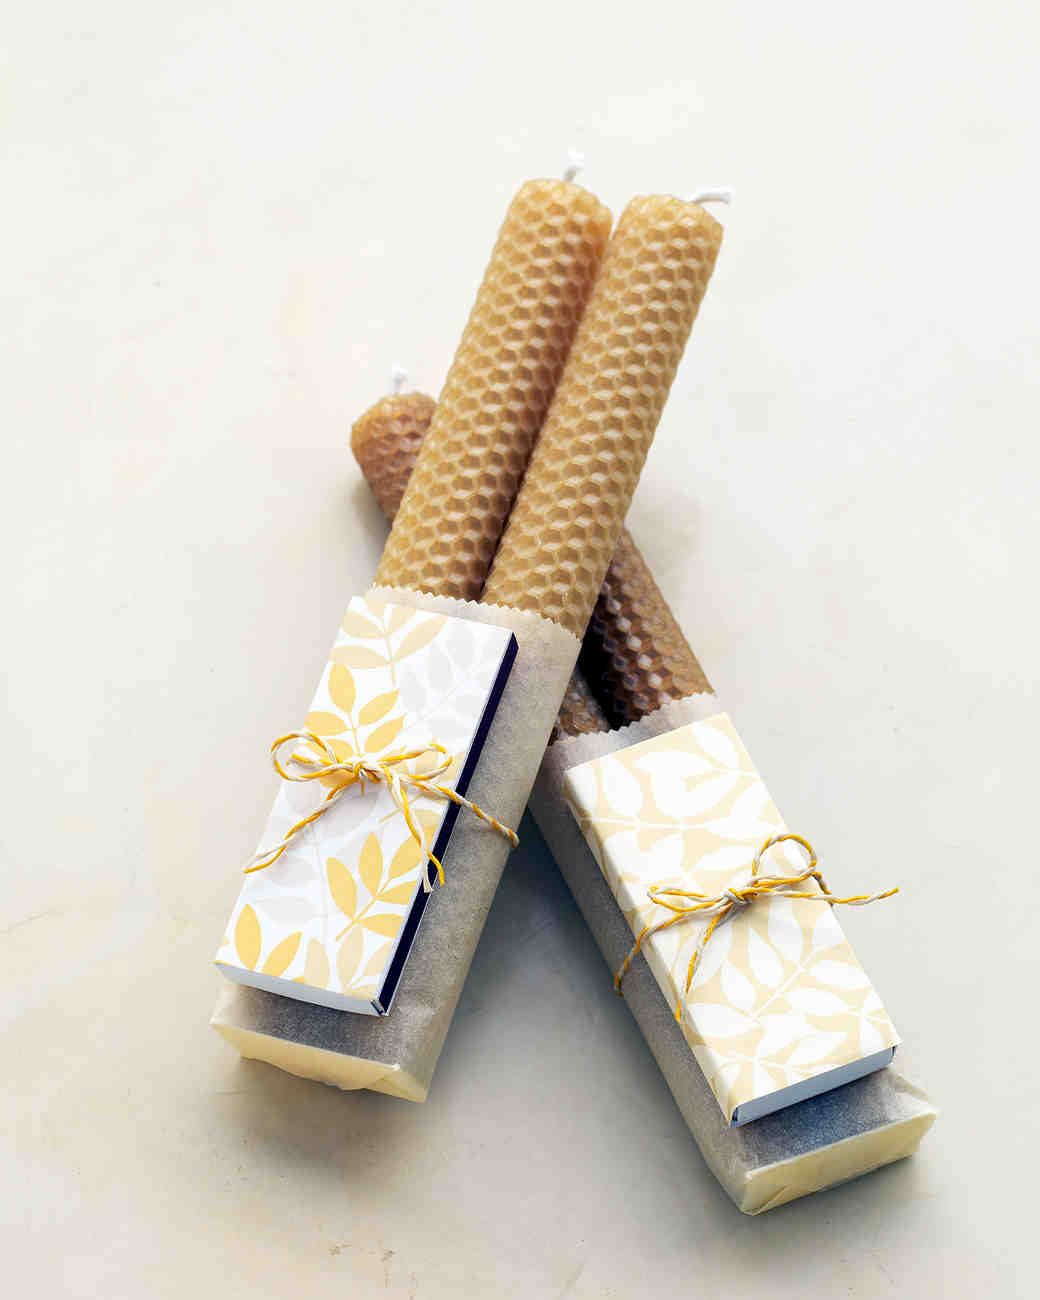 diy-sources-foryourparty-wd105010candlefav-1014.jpg